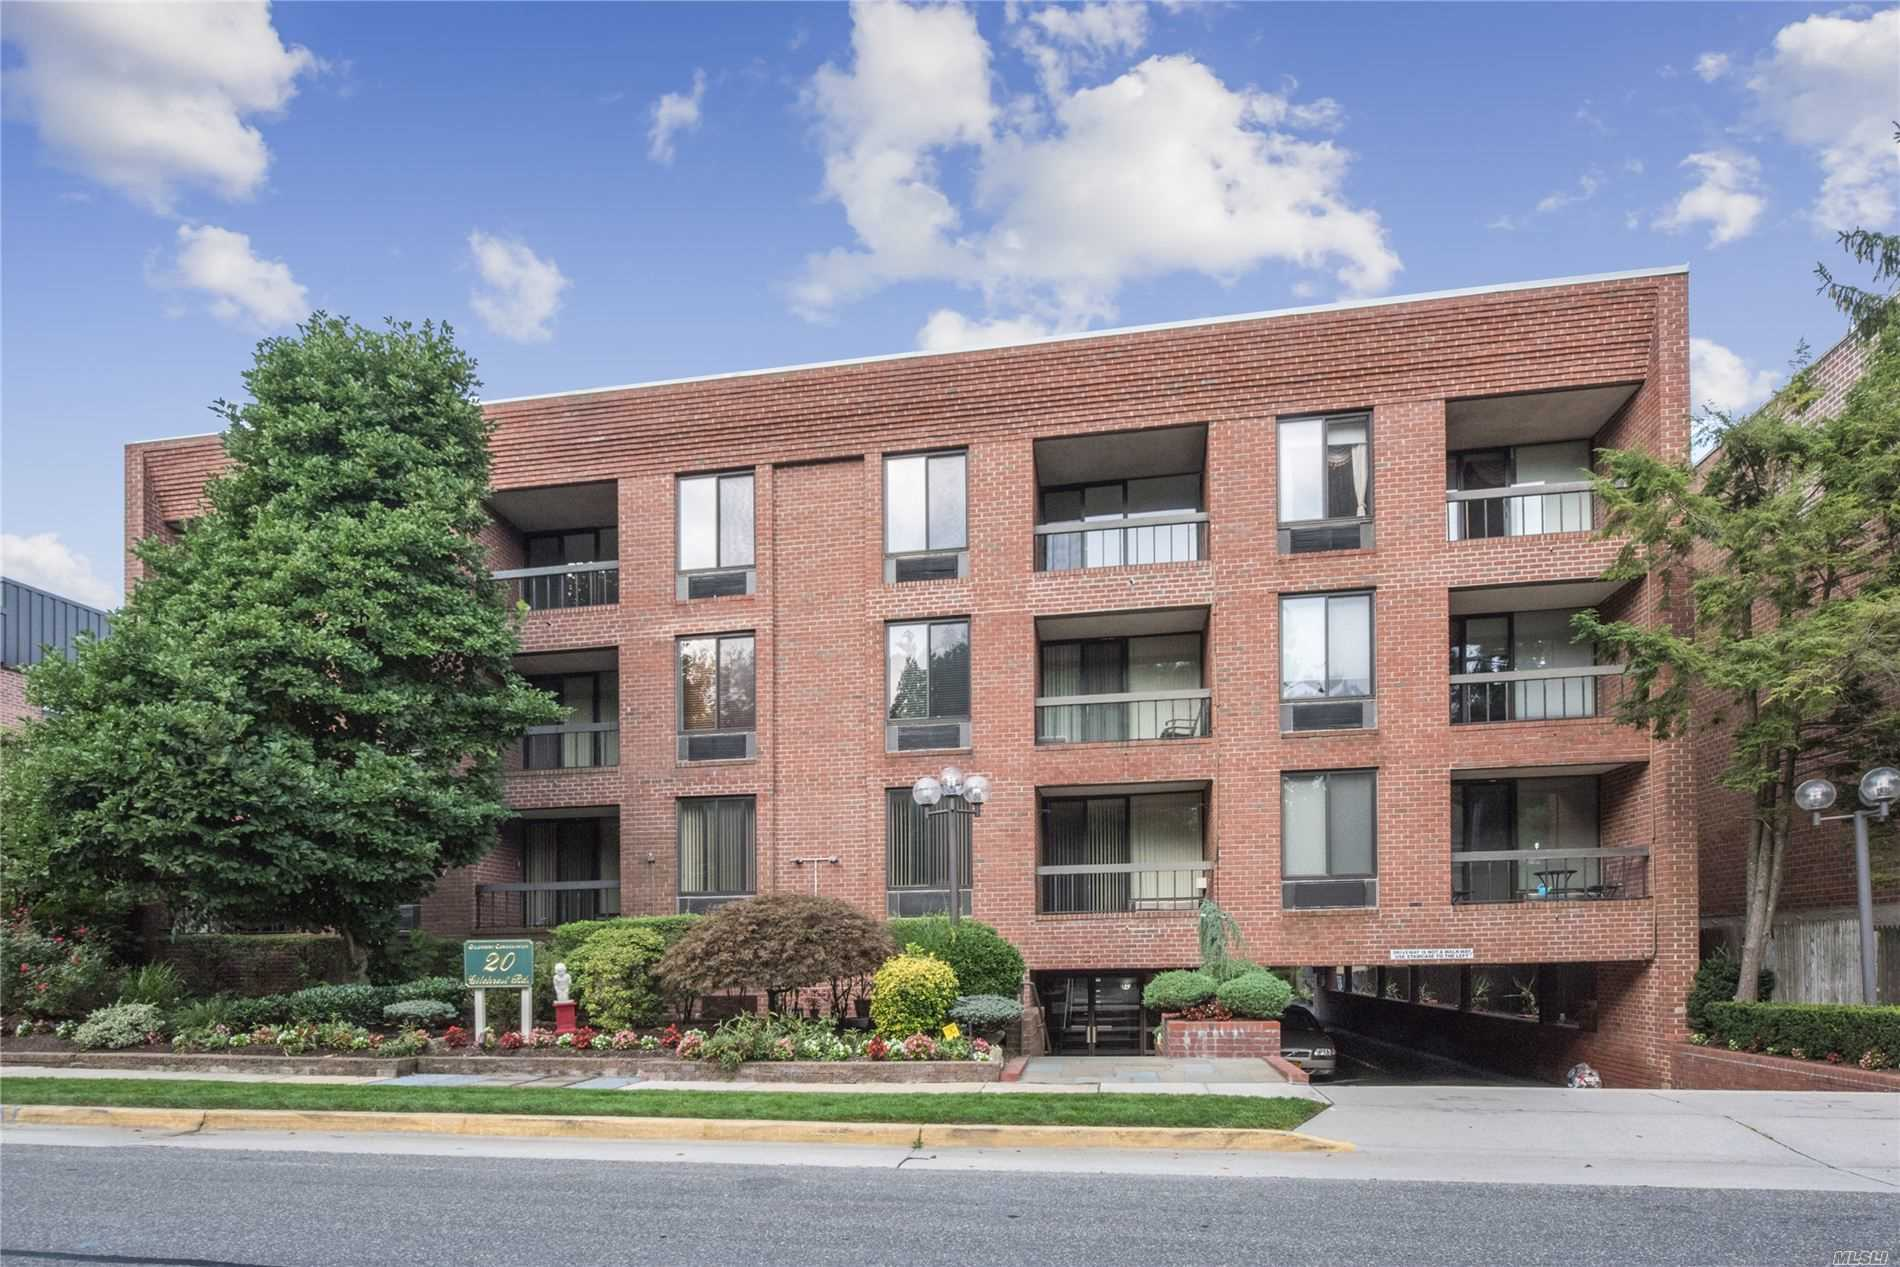 Property for sale at 20 Gilchrest Road # 3E, Great Neck NY 11021, Great Neck,  New York 11021